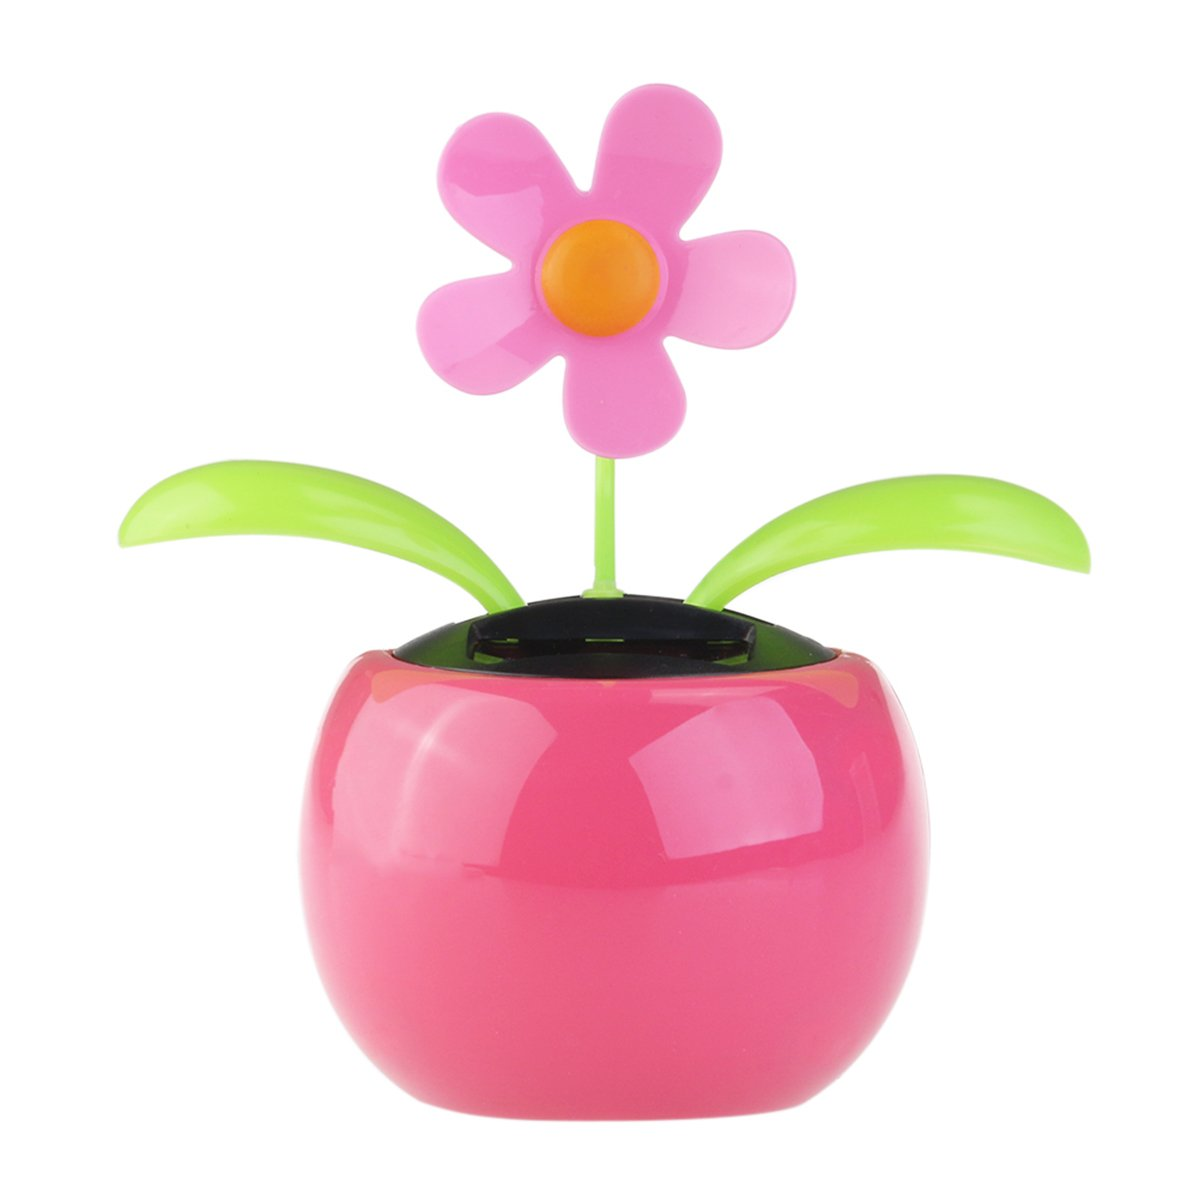 Cheap Dancing Solar Flower Pot Find Dancing Solar Flower Pot Deals